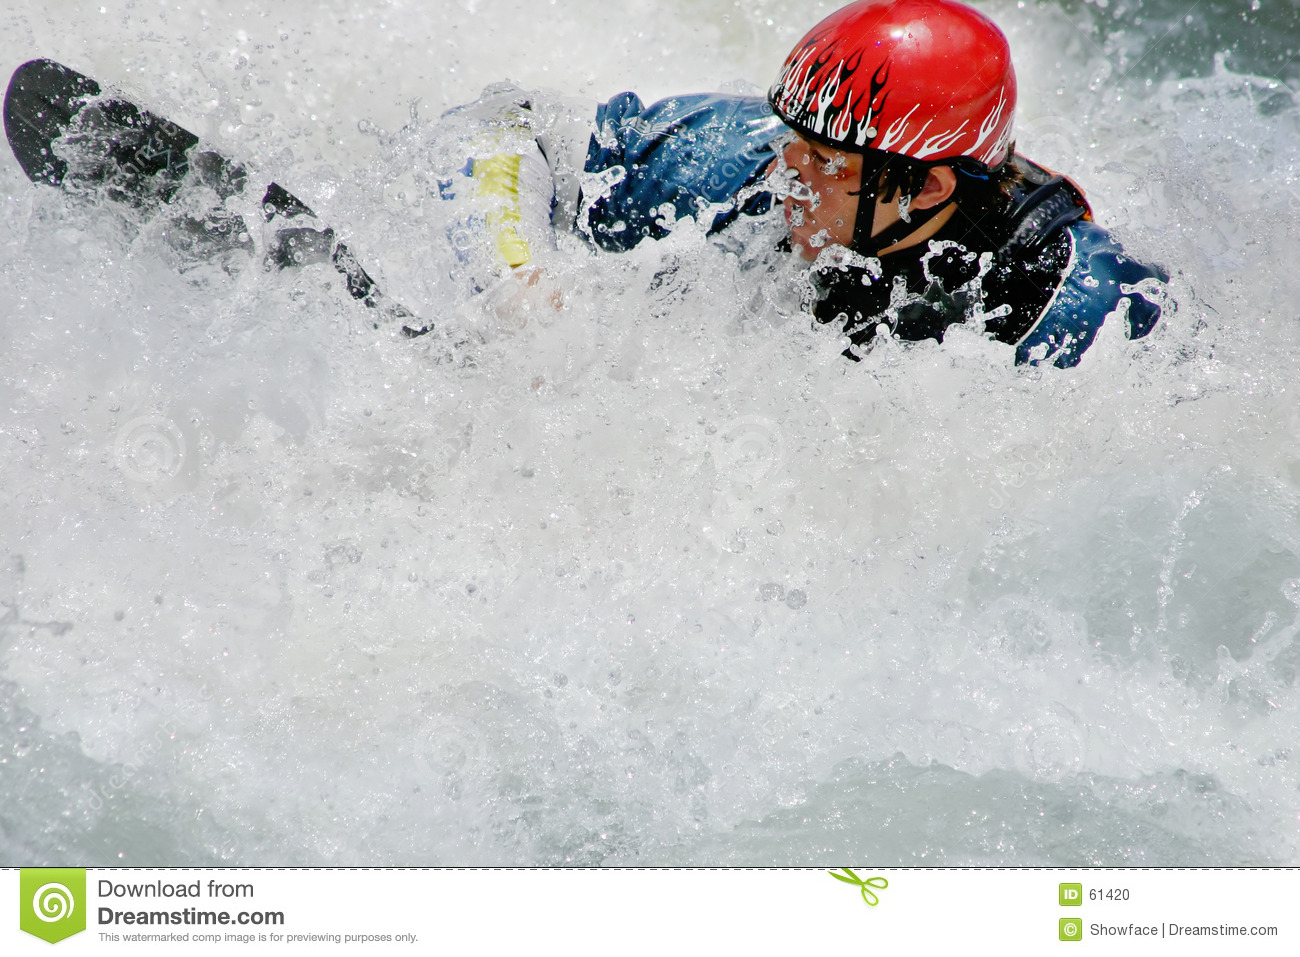 Swallowed up in whitewater